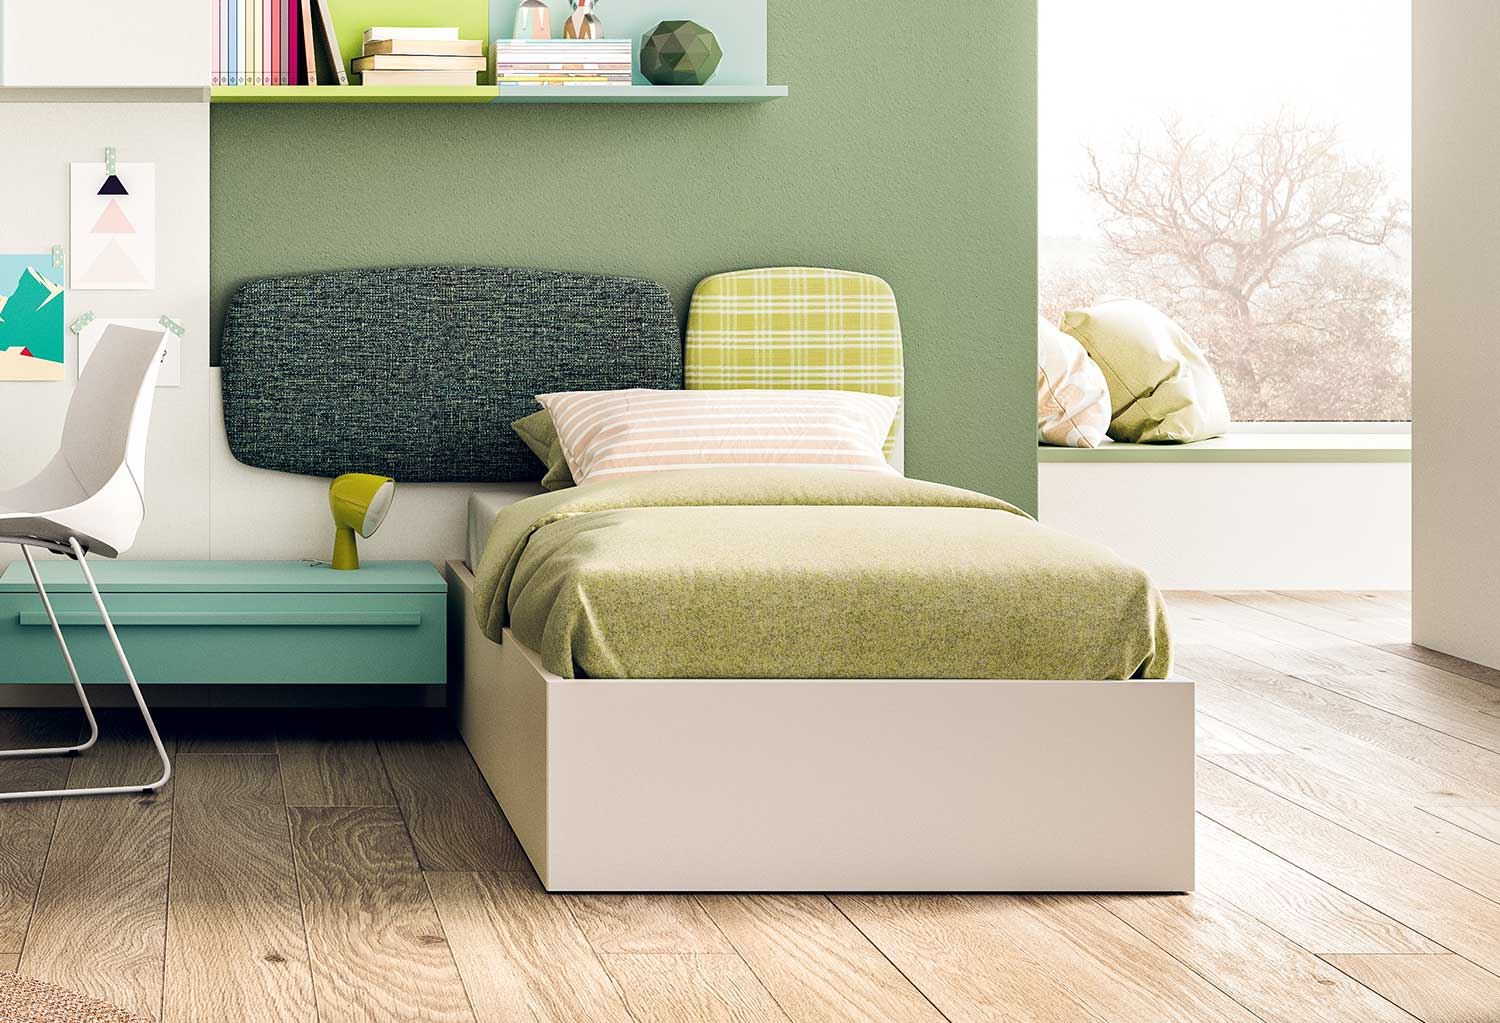 Cloud are multi-purpose wall panels for beds or lounge areas